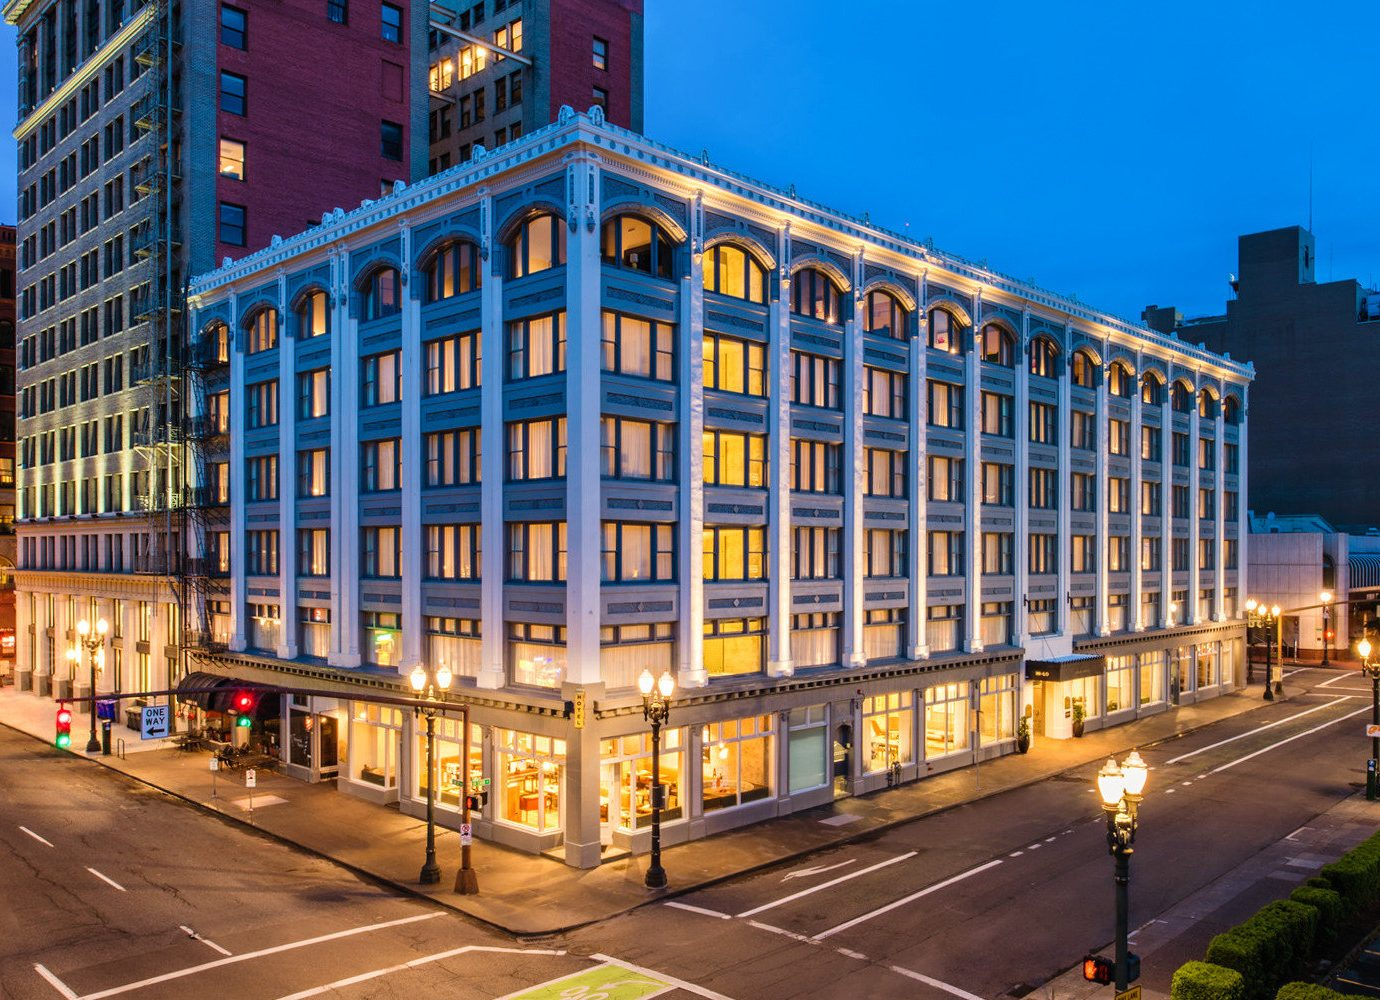 Boutique Hotels Hotels Luxury Travel building outdoor metropolitan area urban area condominium City landmark neighbourhood residential area metropolis commercial building Downtown cityscape mixed use Architecture Town tower block apartment sky hotel corporate headquarters skyscraper night daytime house real estate headquarters plaza facade home evening window tall suburb street